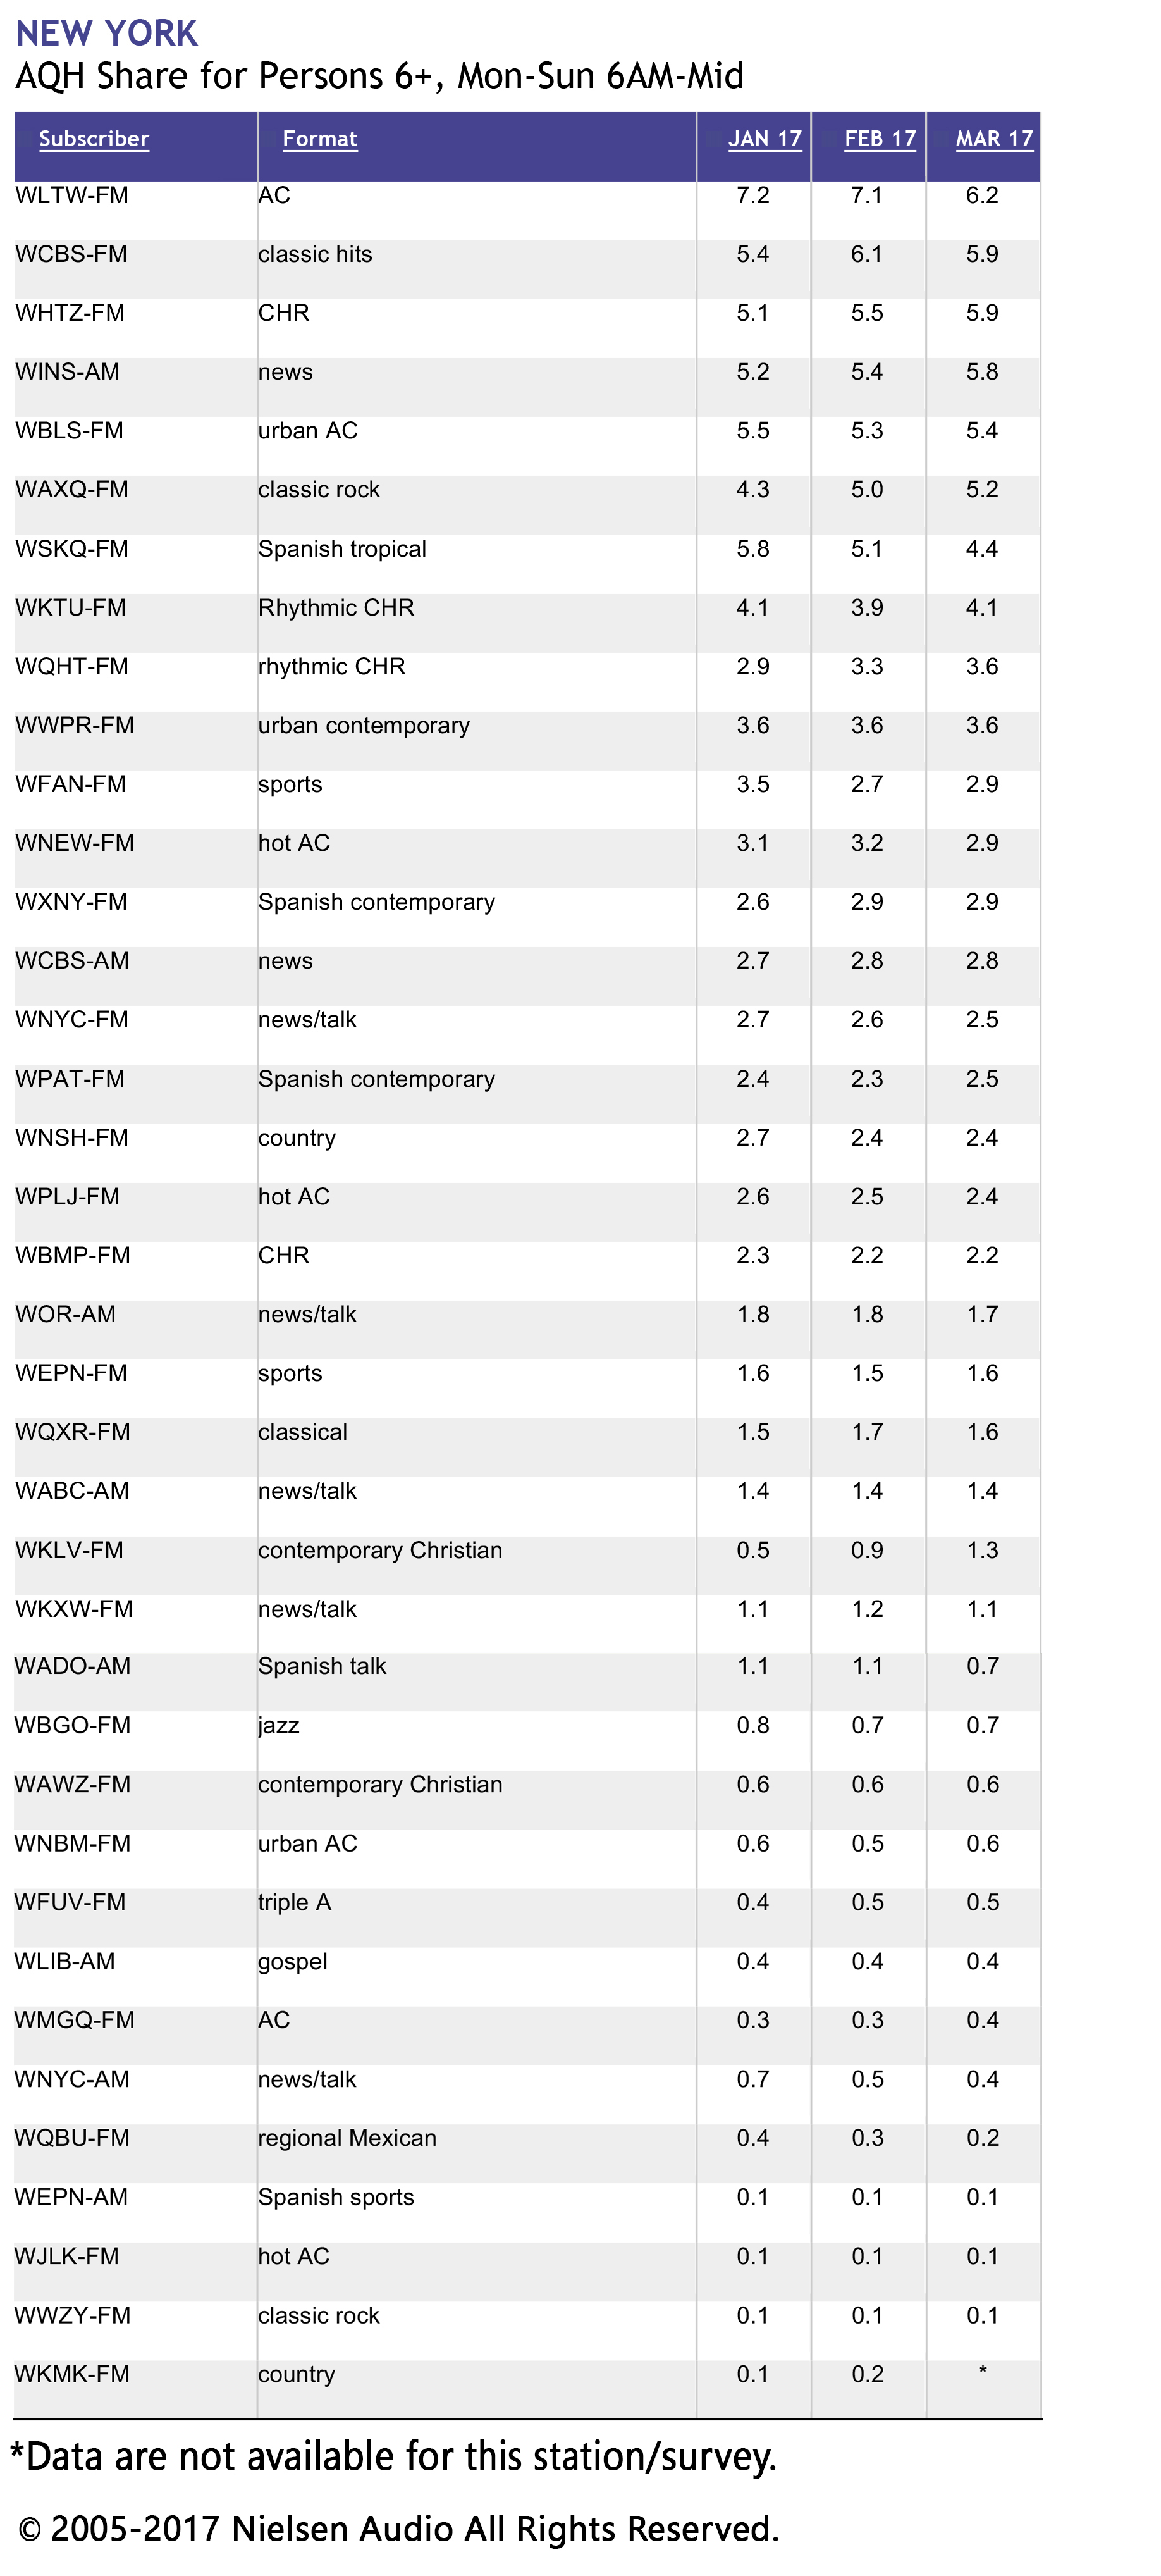 March 2017 PPM Ratings